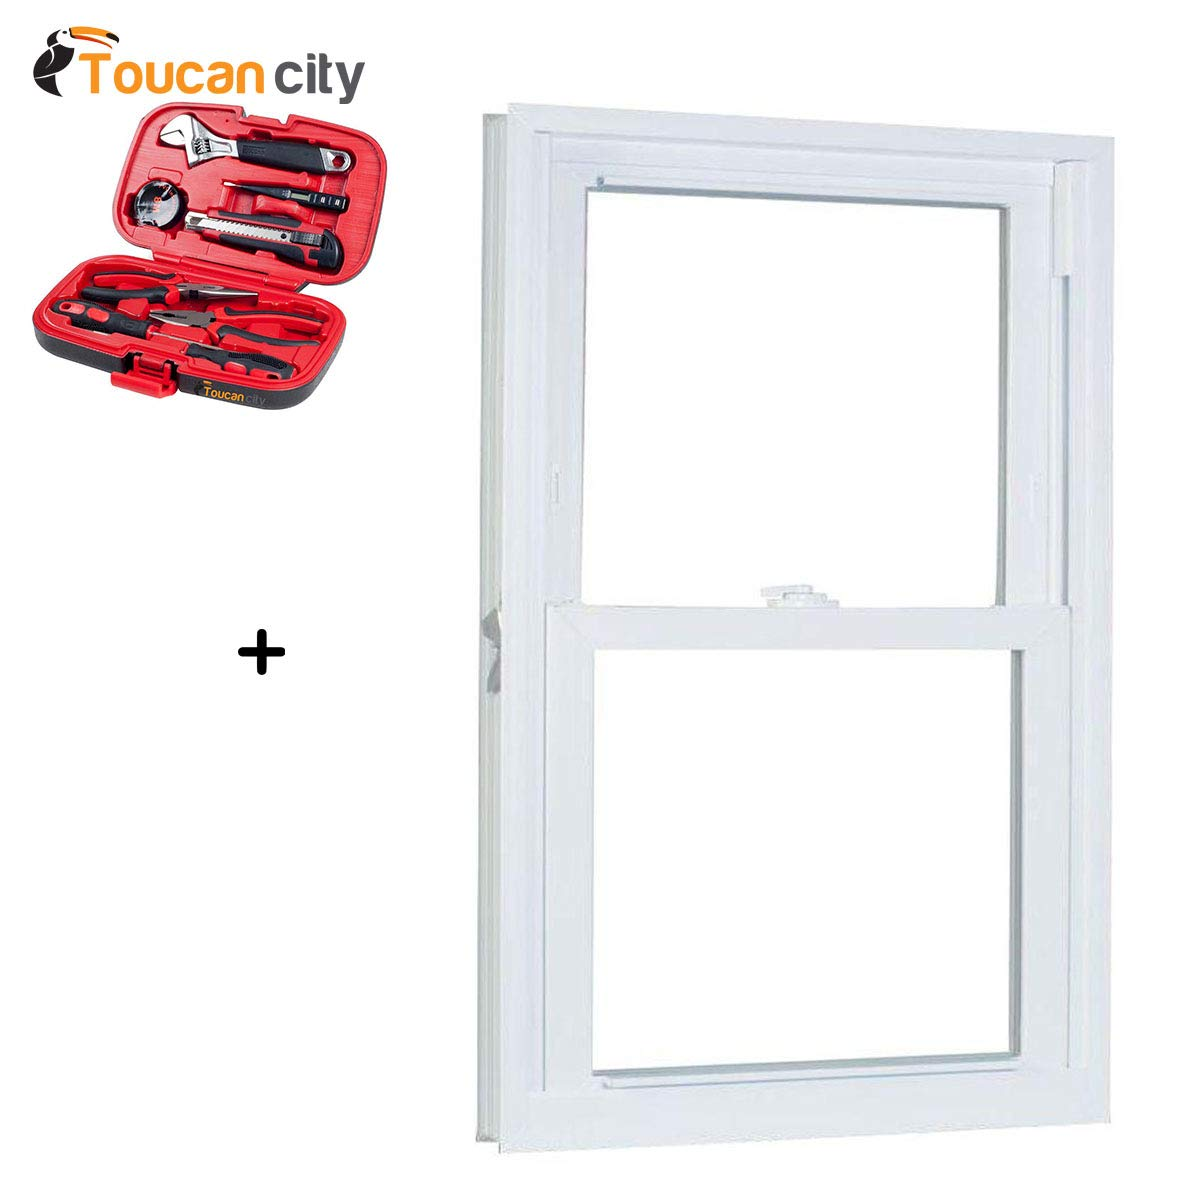 Toucan City Tool Kit (9-Piece) and American Craftsman 23.75 in. x 57.25 in. 70 Series Pro Double Hung White Vinyl Window with Buck Frame 2458786